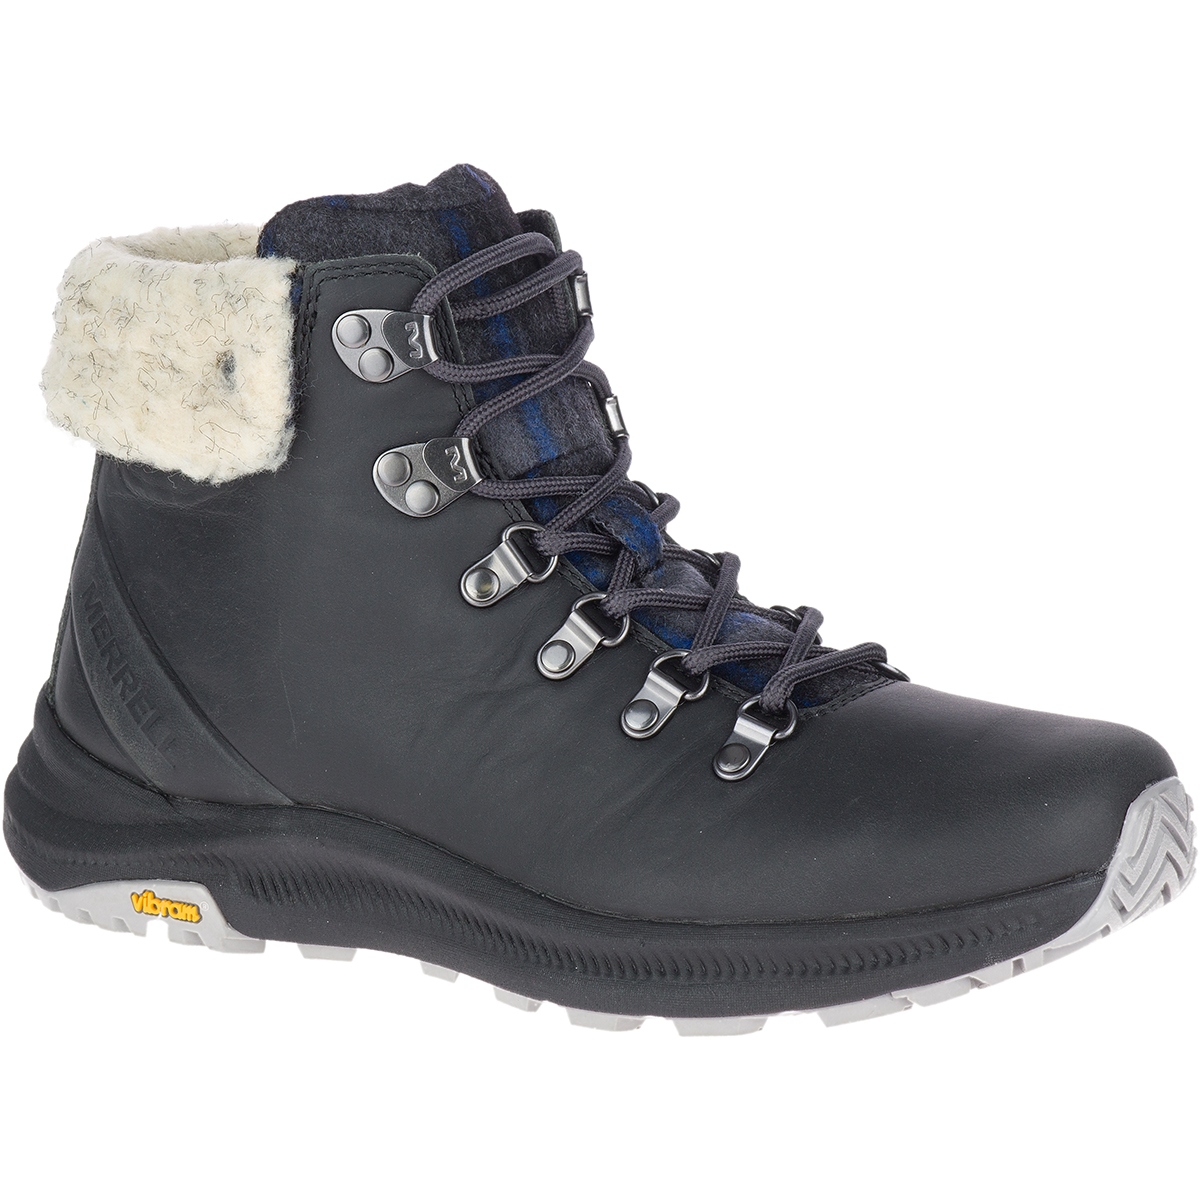 Merrell Women's Ontario X Stormy Kromer Wool Hiking Boot - Black, 7.5